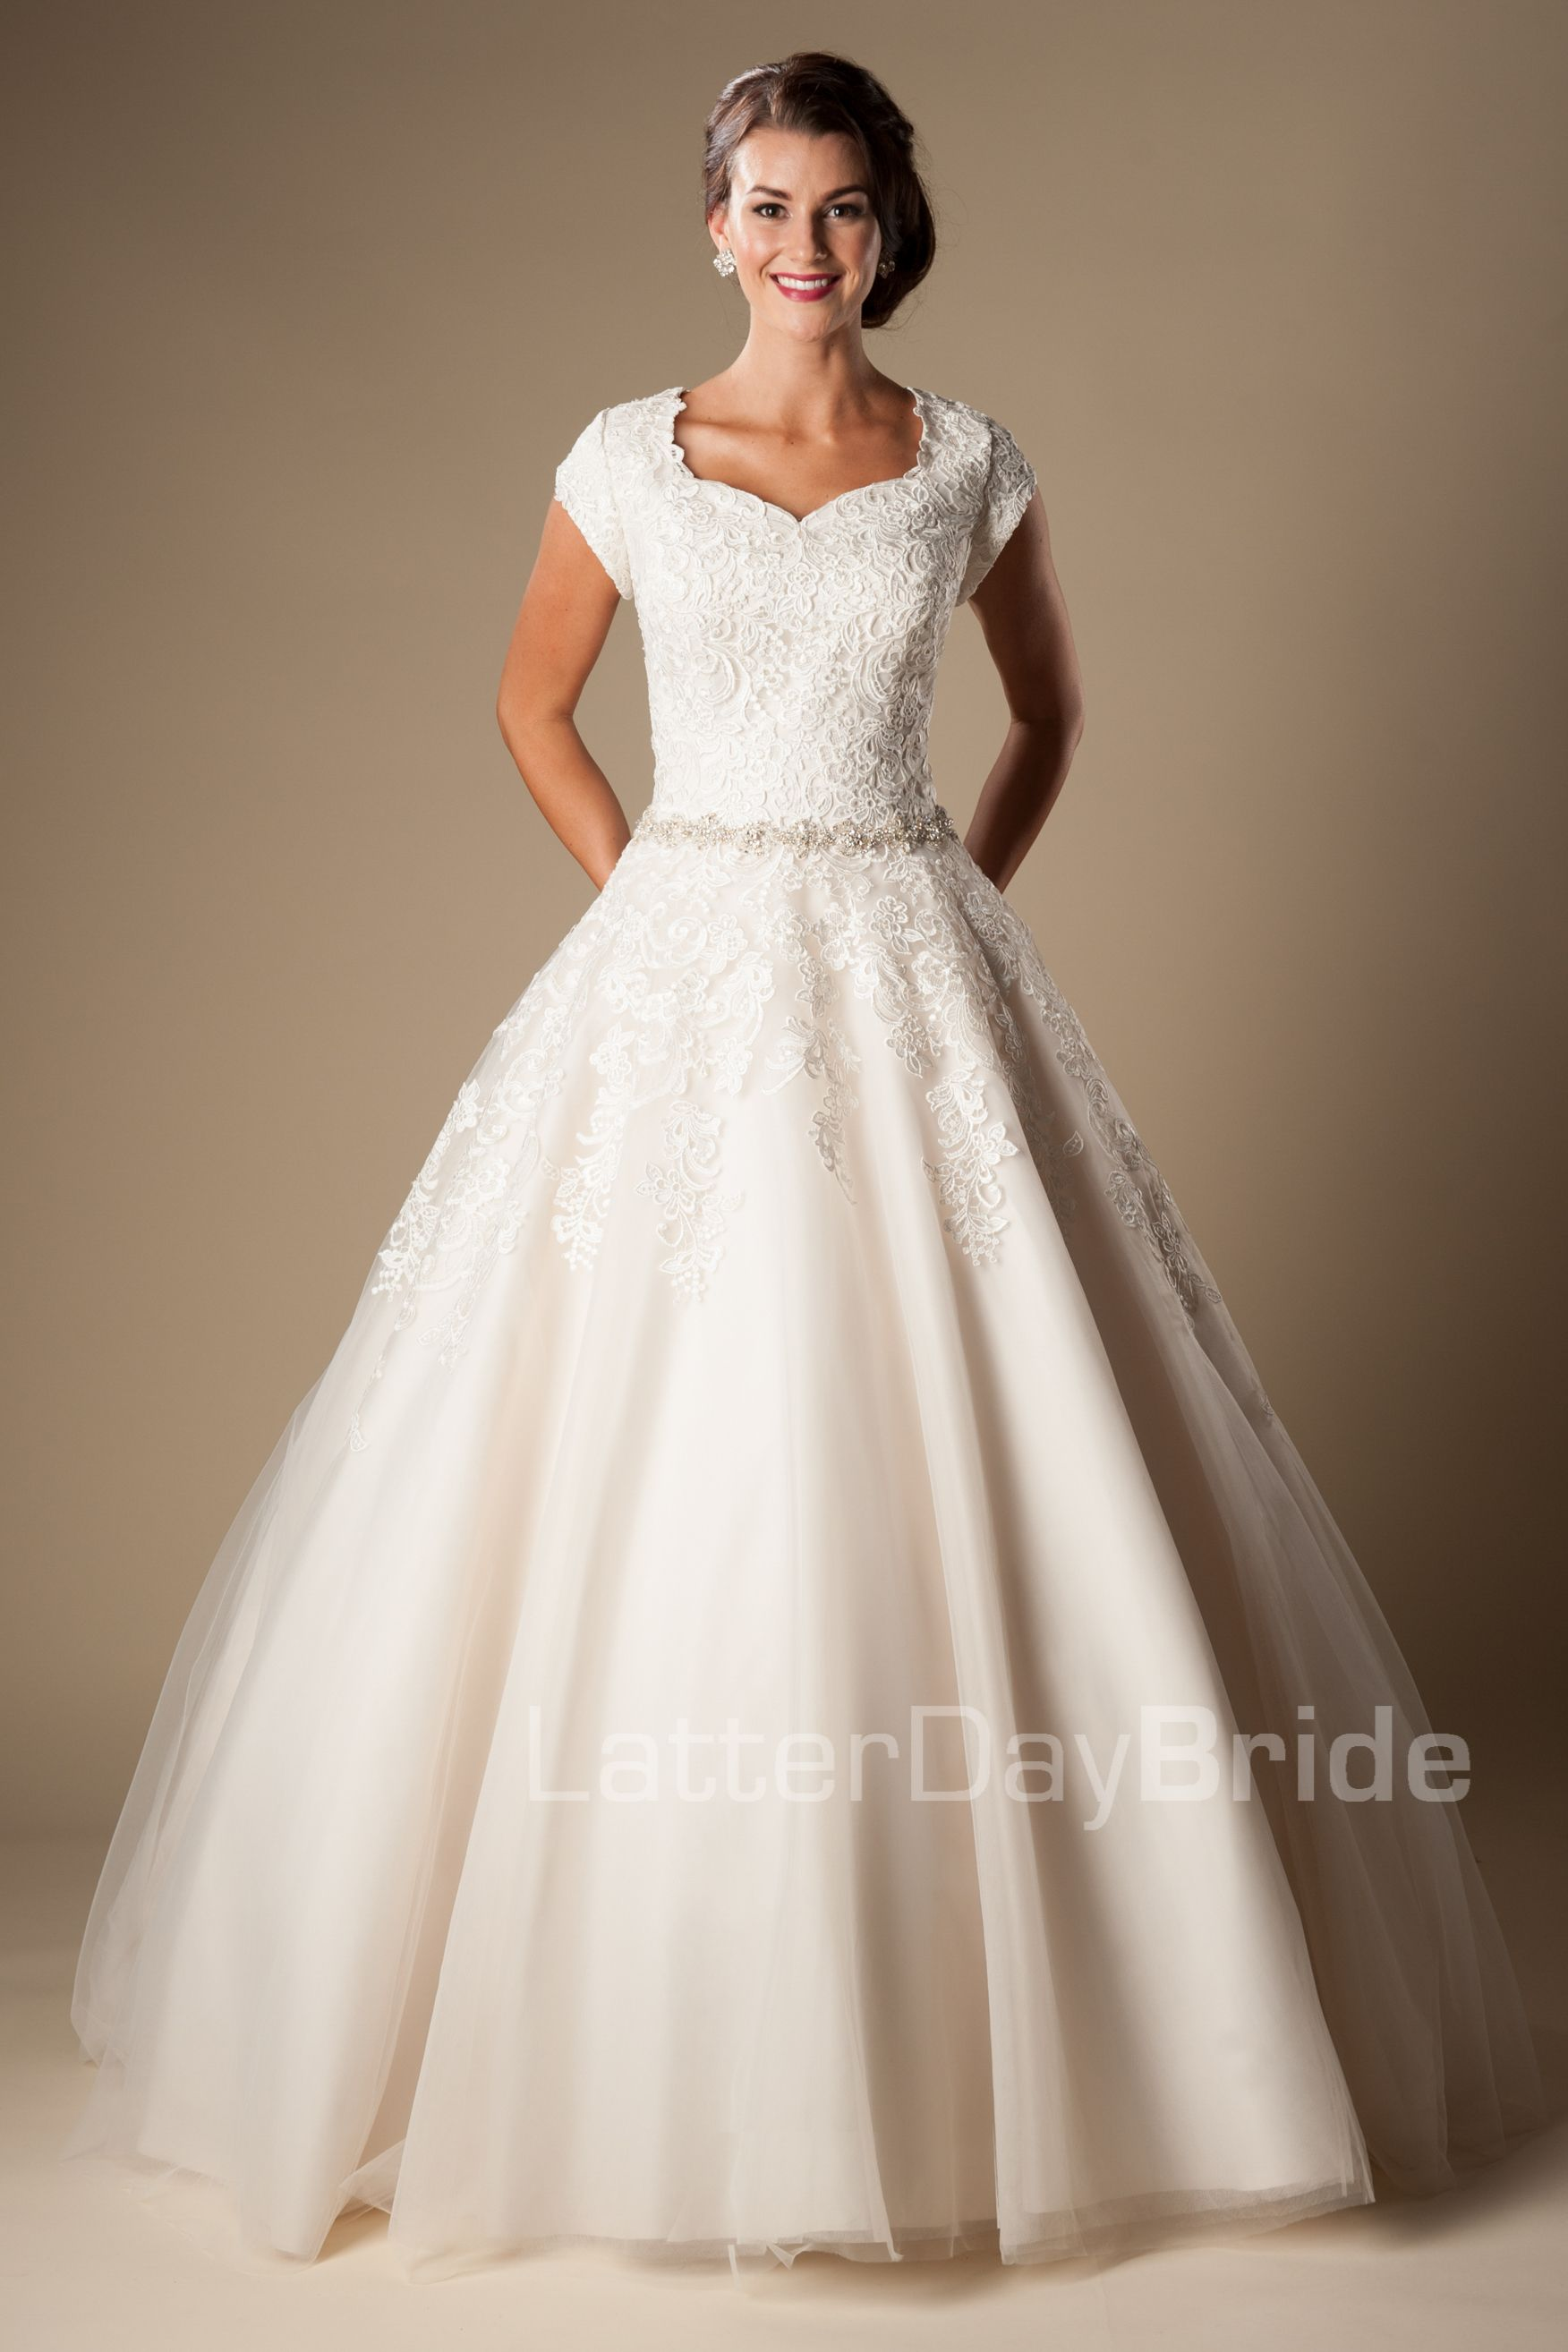 Plus size wedding dresses castleford - Modest Wedding Dresses Fiona Lace Ballgown From Latter Day Bride Really Like The Look Of This Dress